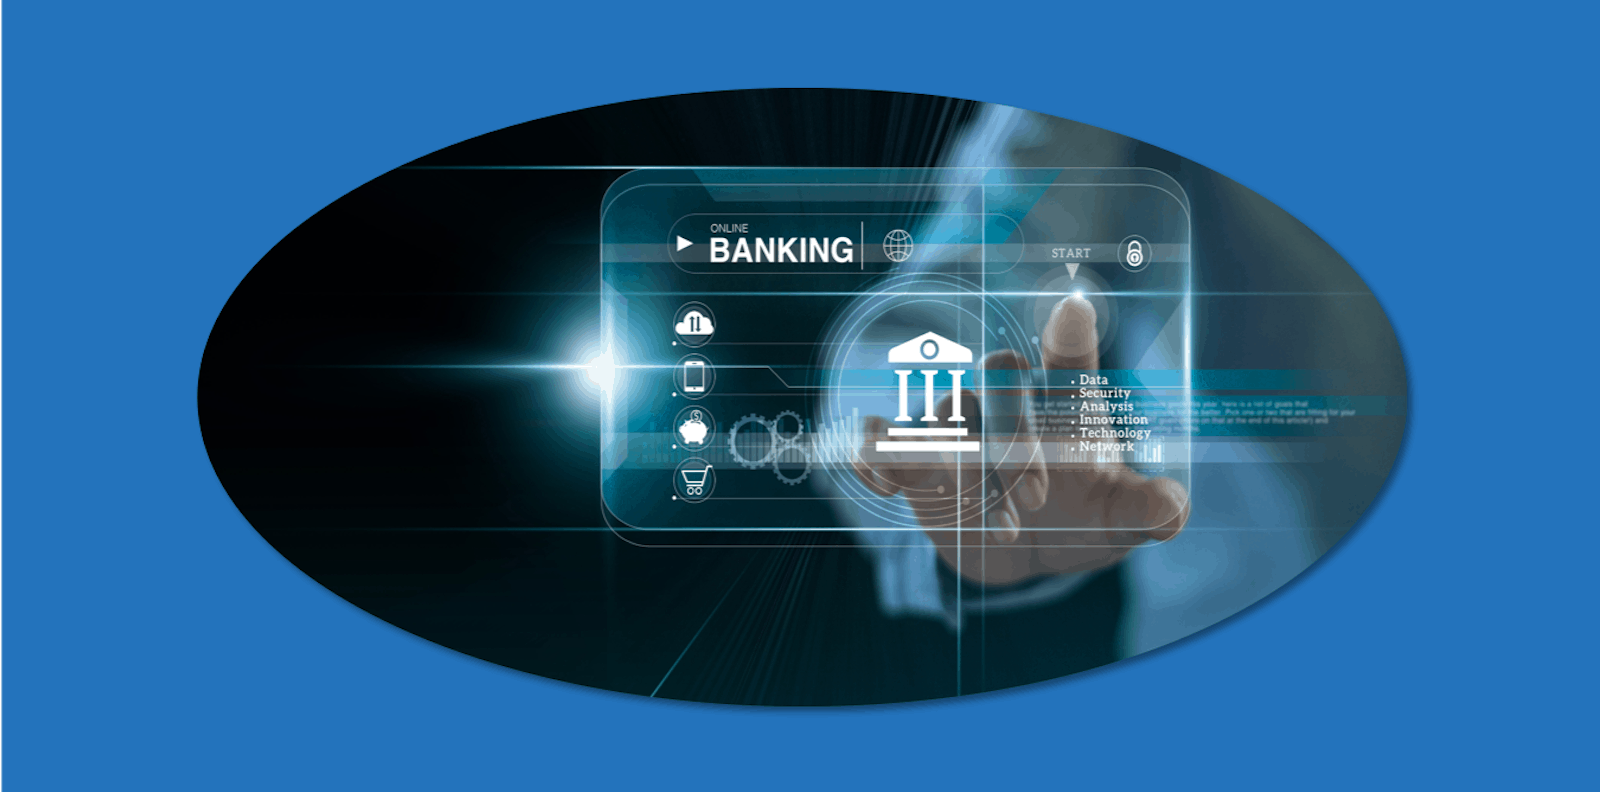 Technology in Banking - Feature